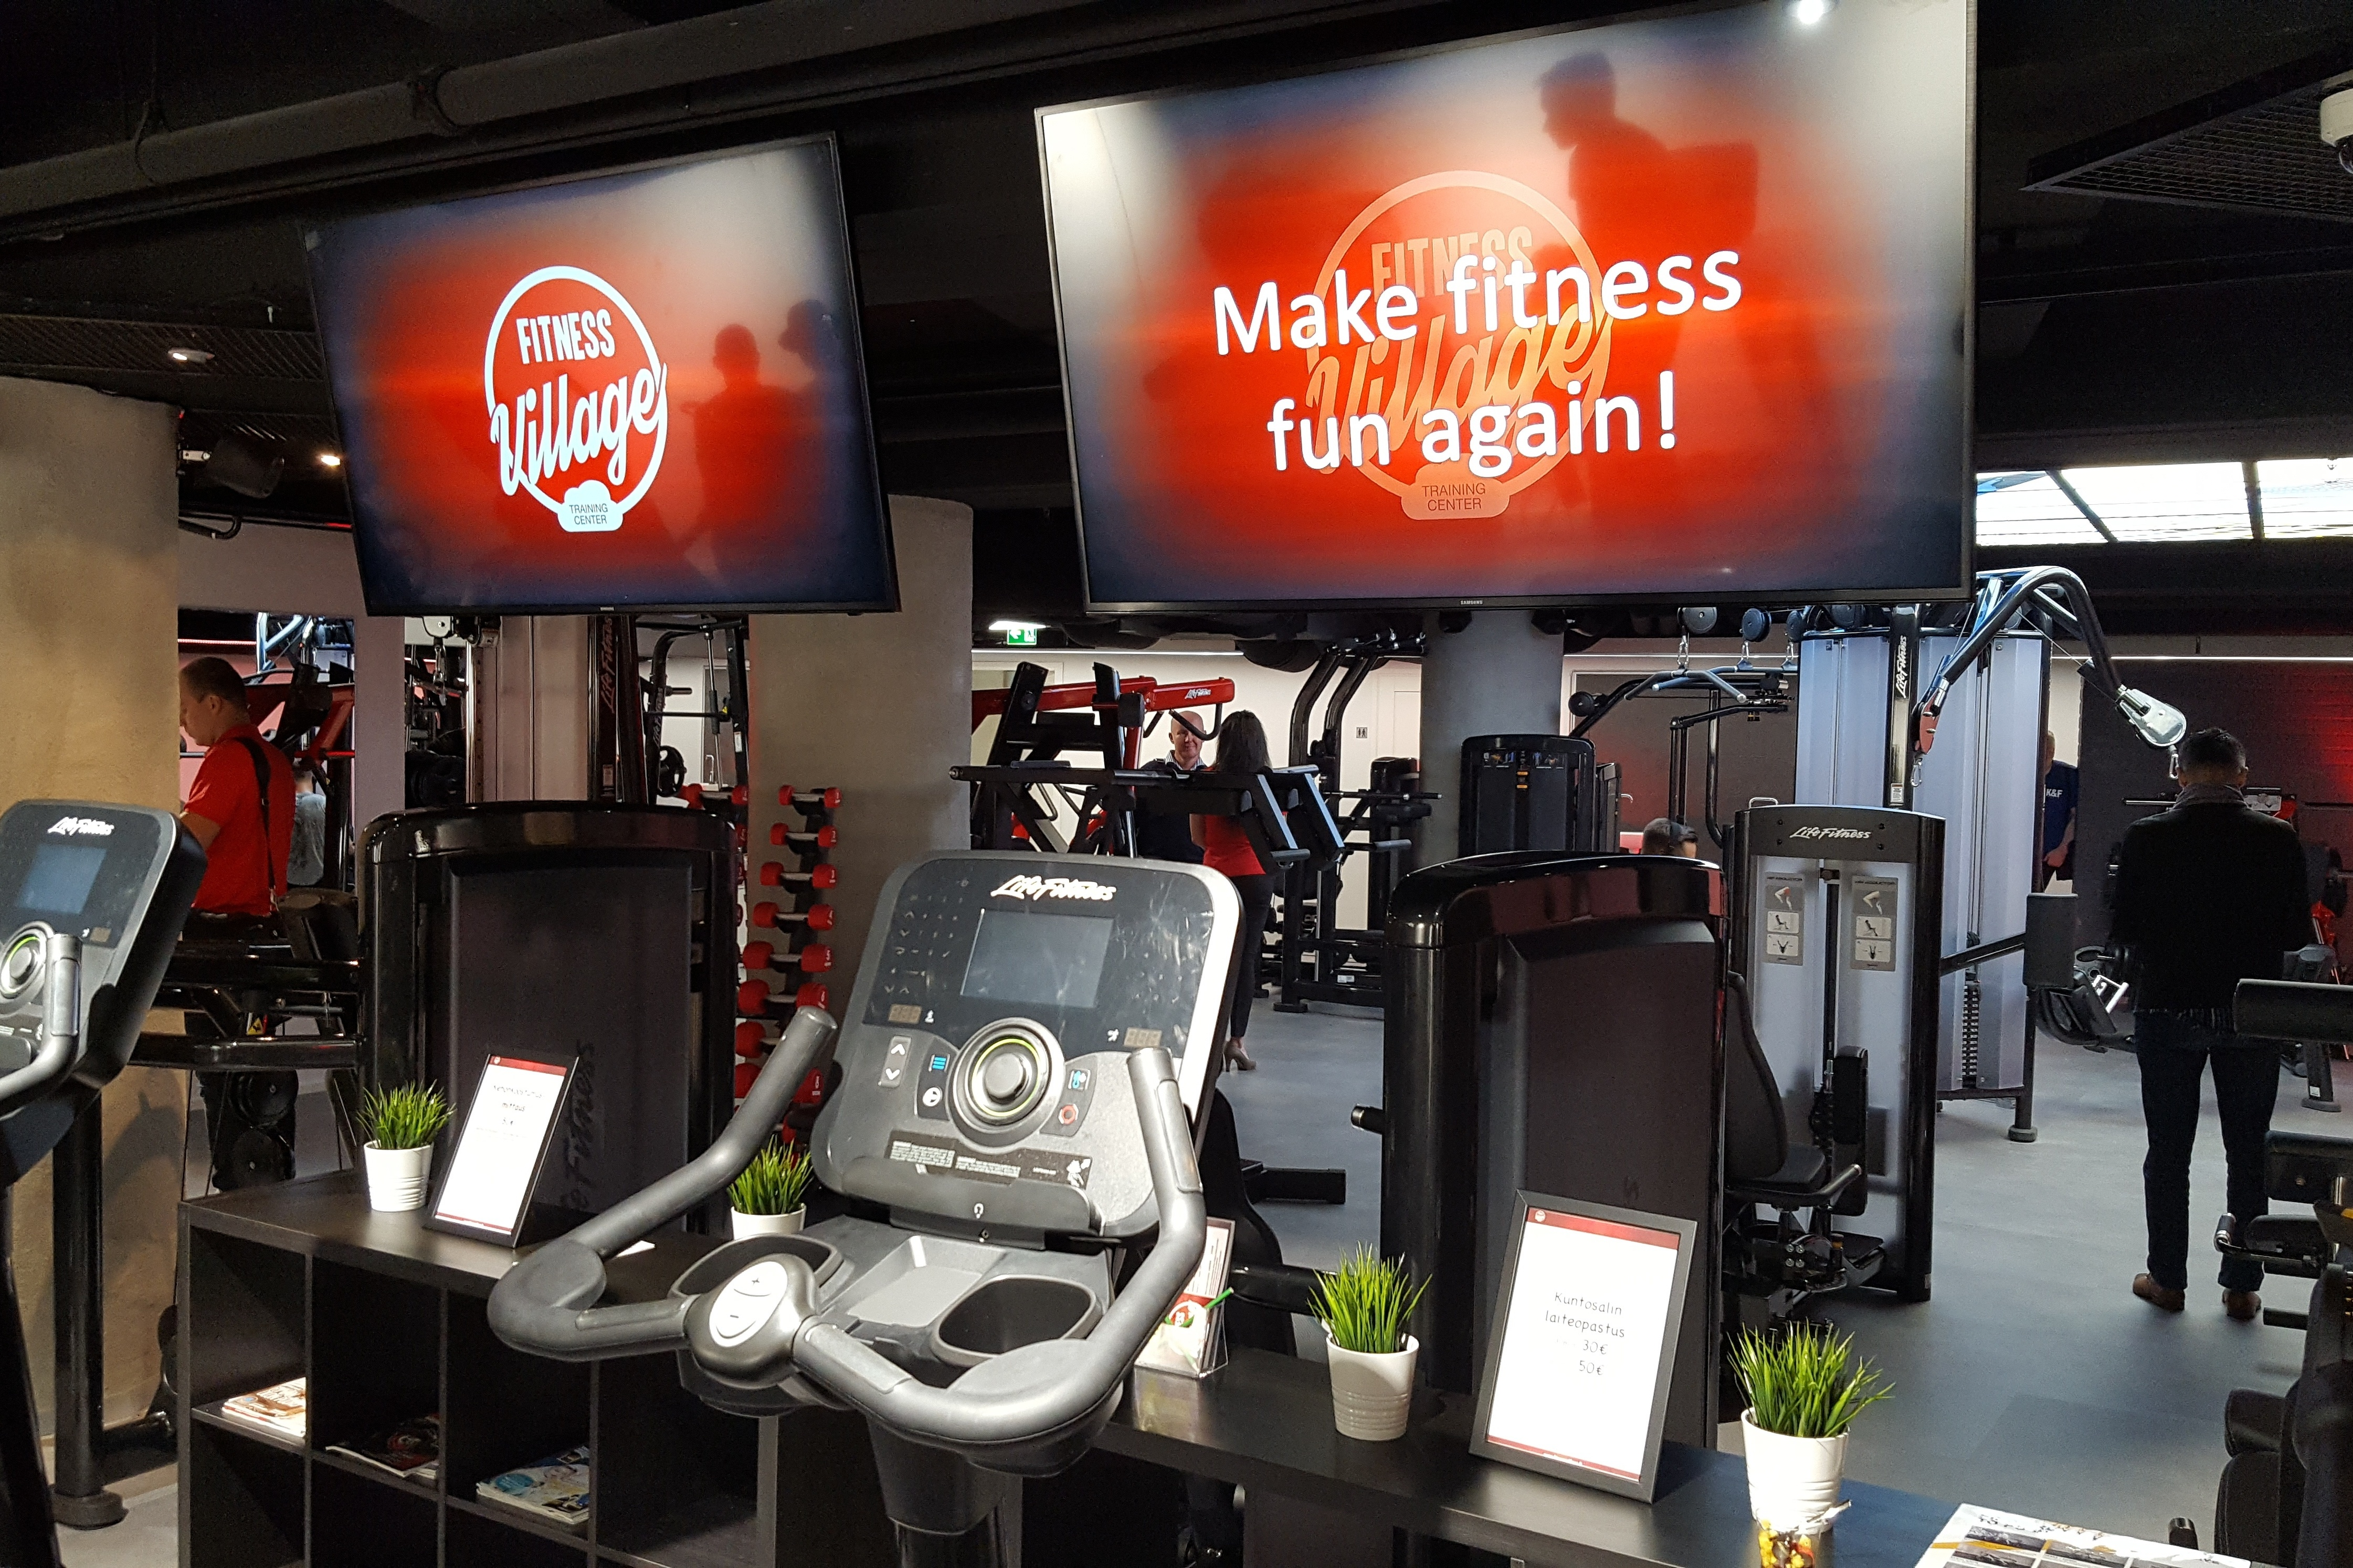 The brand new Fitness Village Training Center utilizes gamified elements in its training equipment